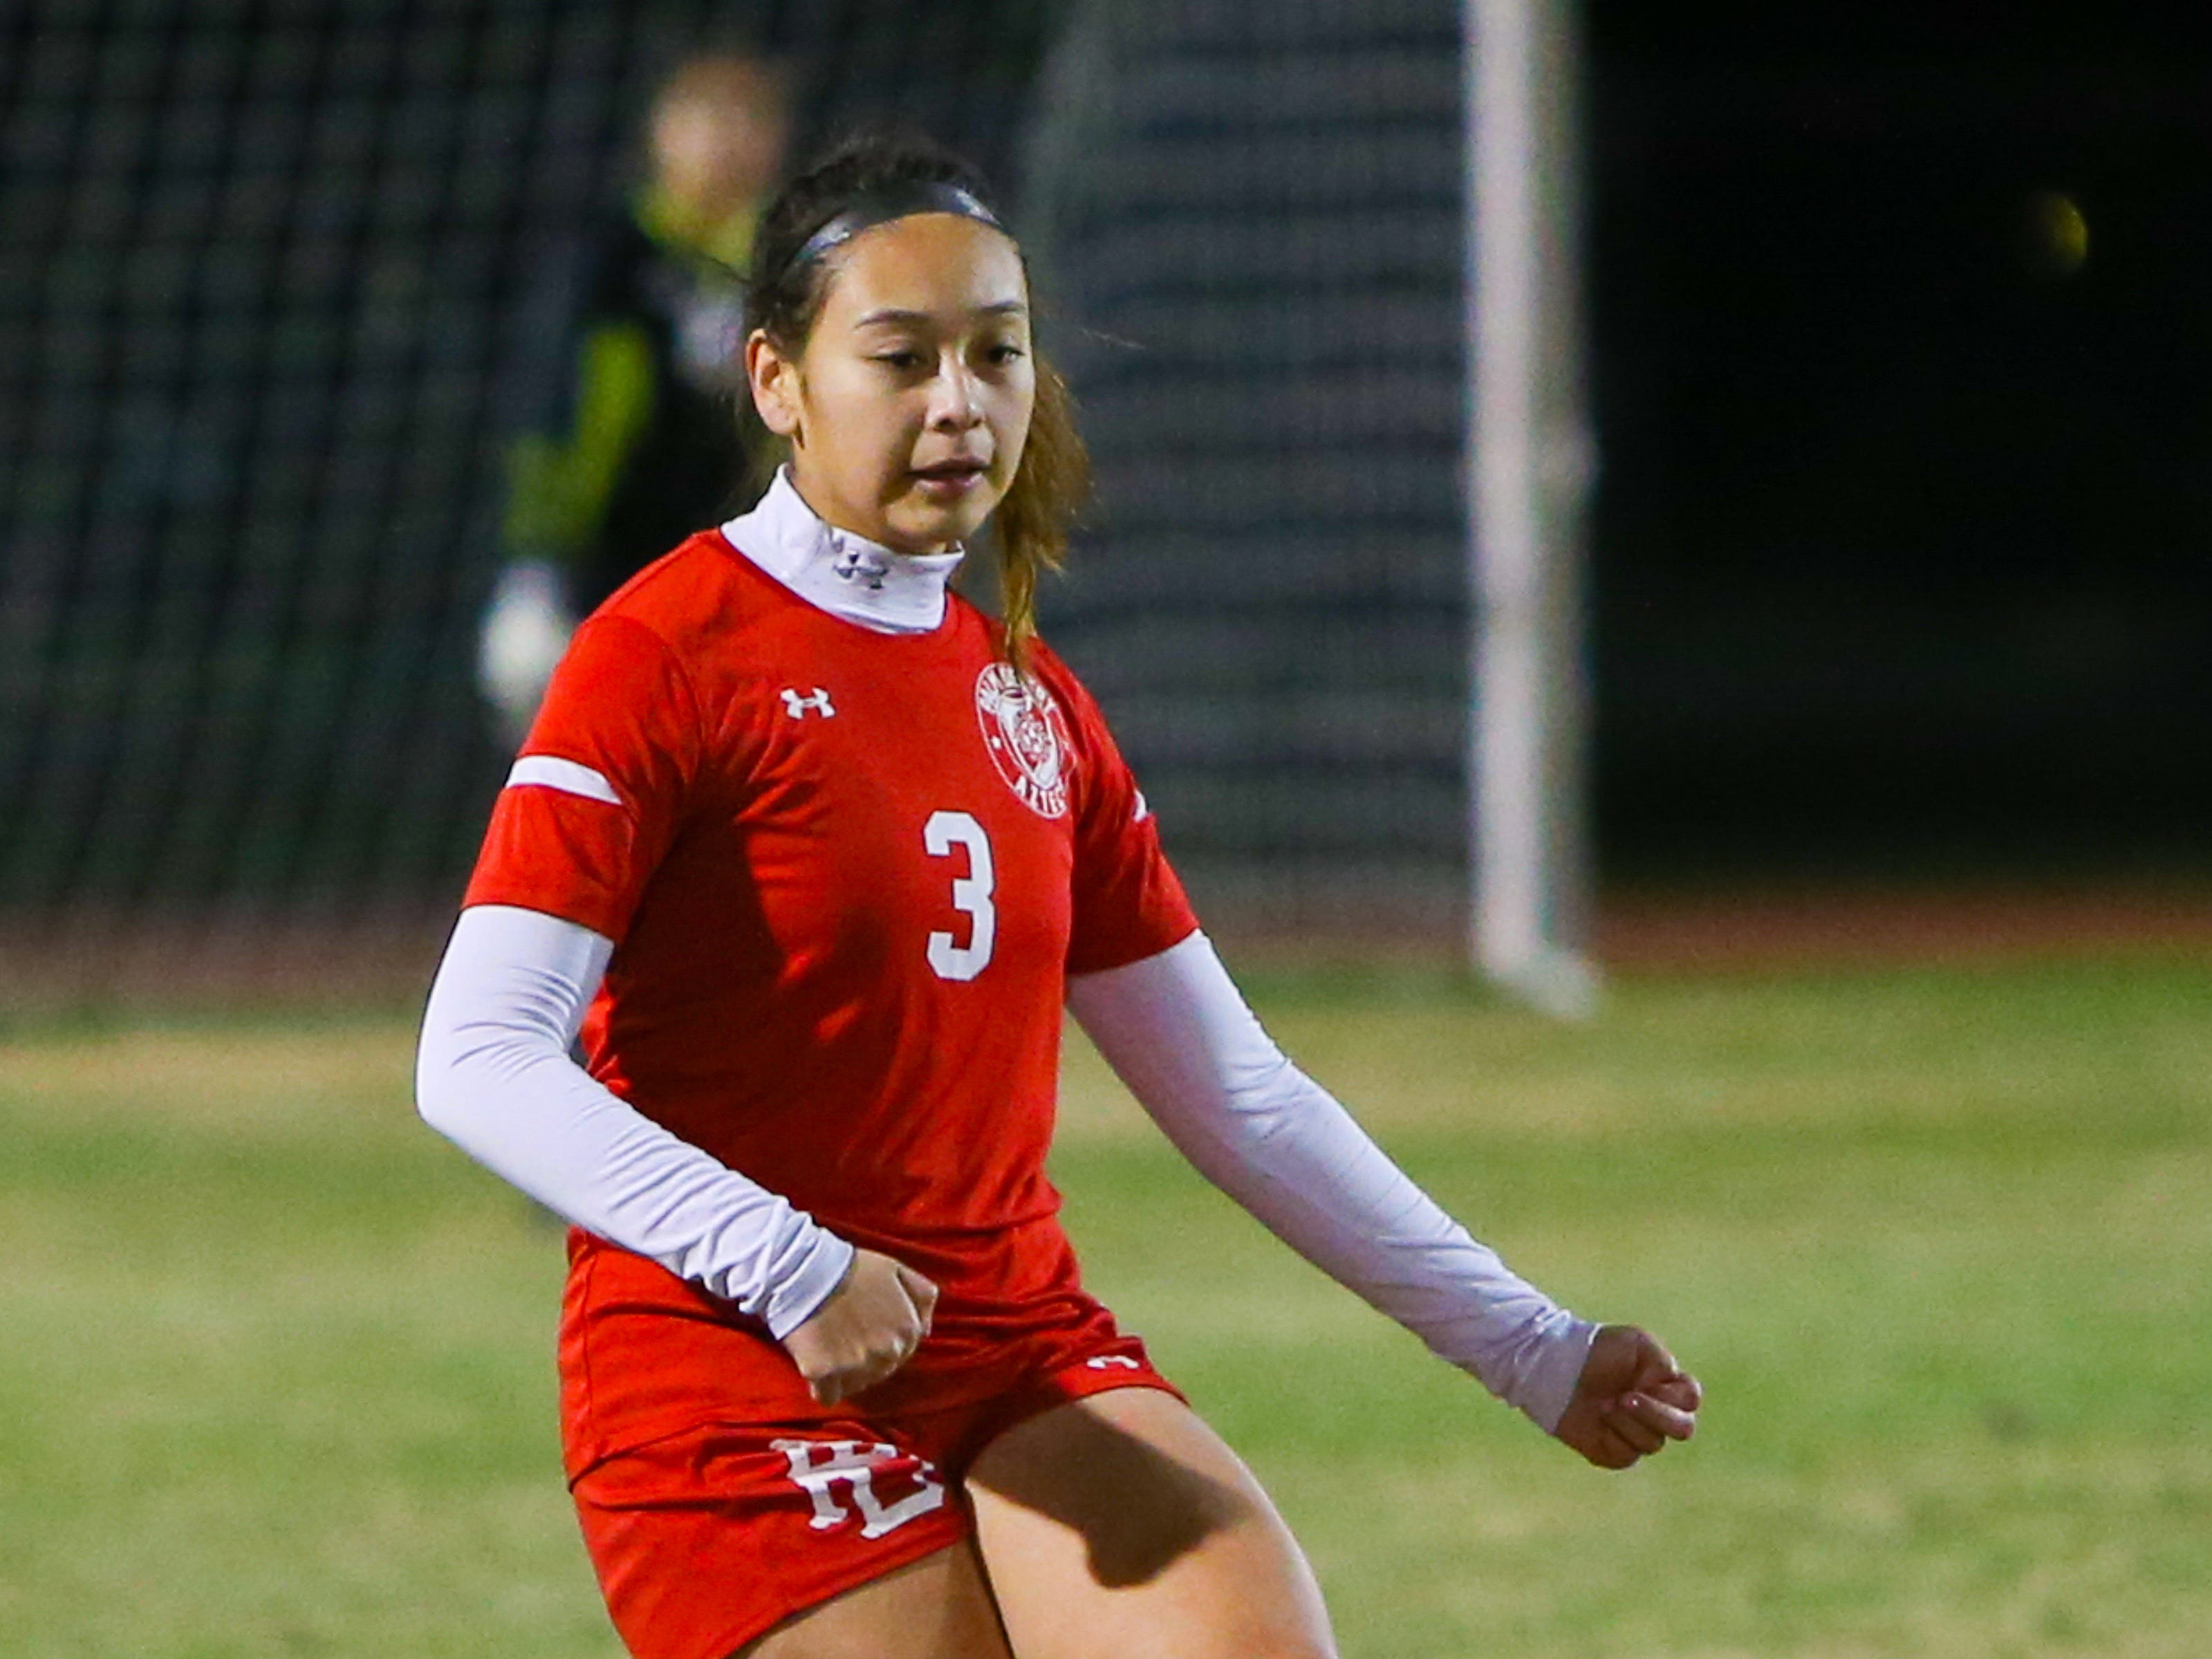 Andrea Soto passing the ball from downfield. The Palm Desert varsity soccer team won Wednesday's home playoff game against Miller by a score of 5-1.